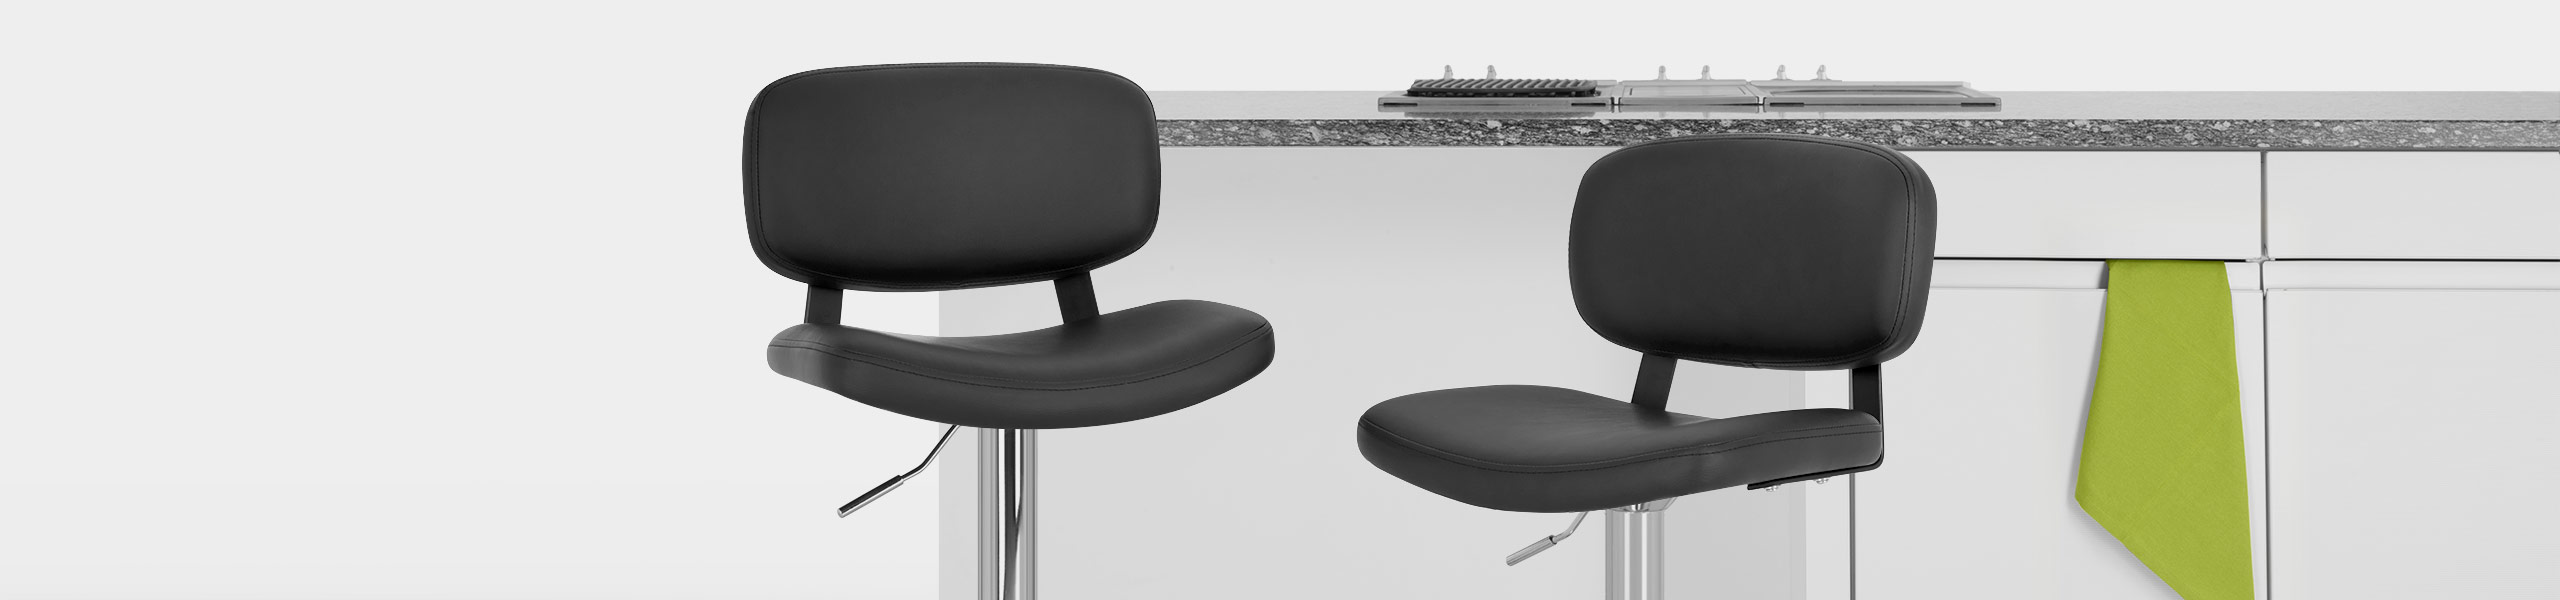 Edge Bar Stool Black Video Banner